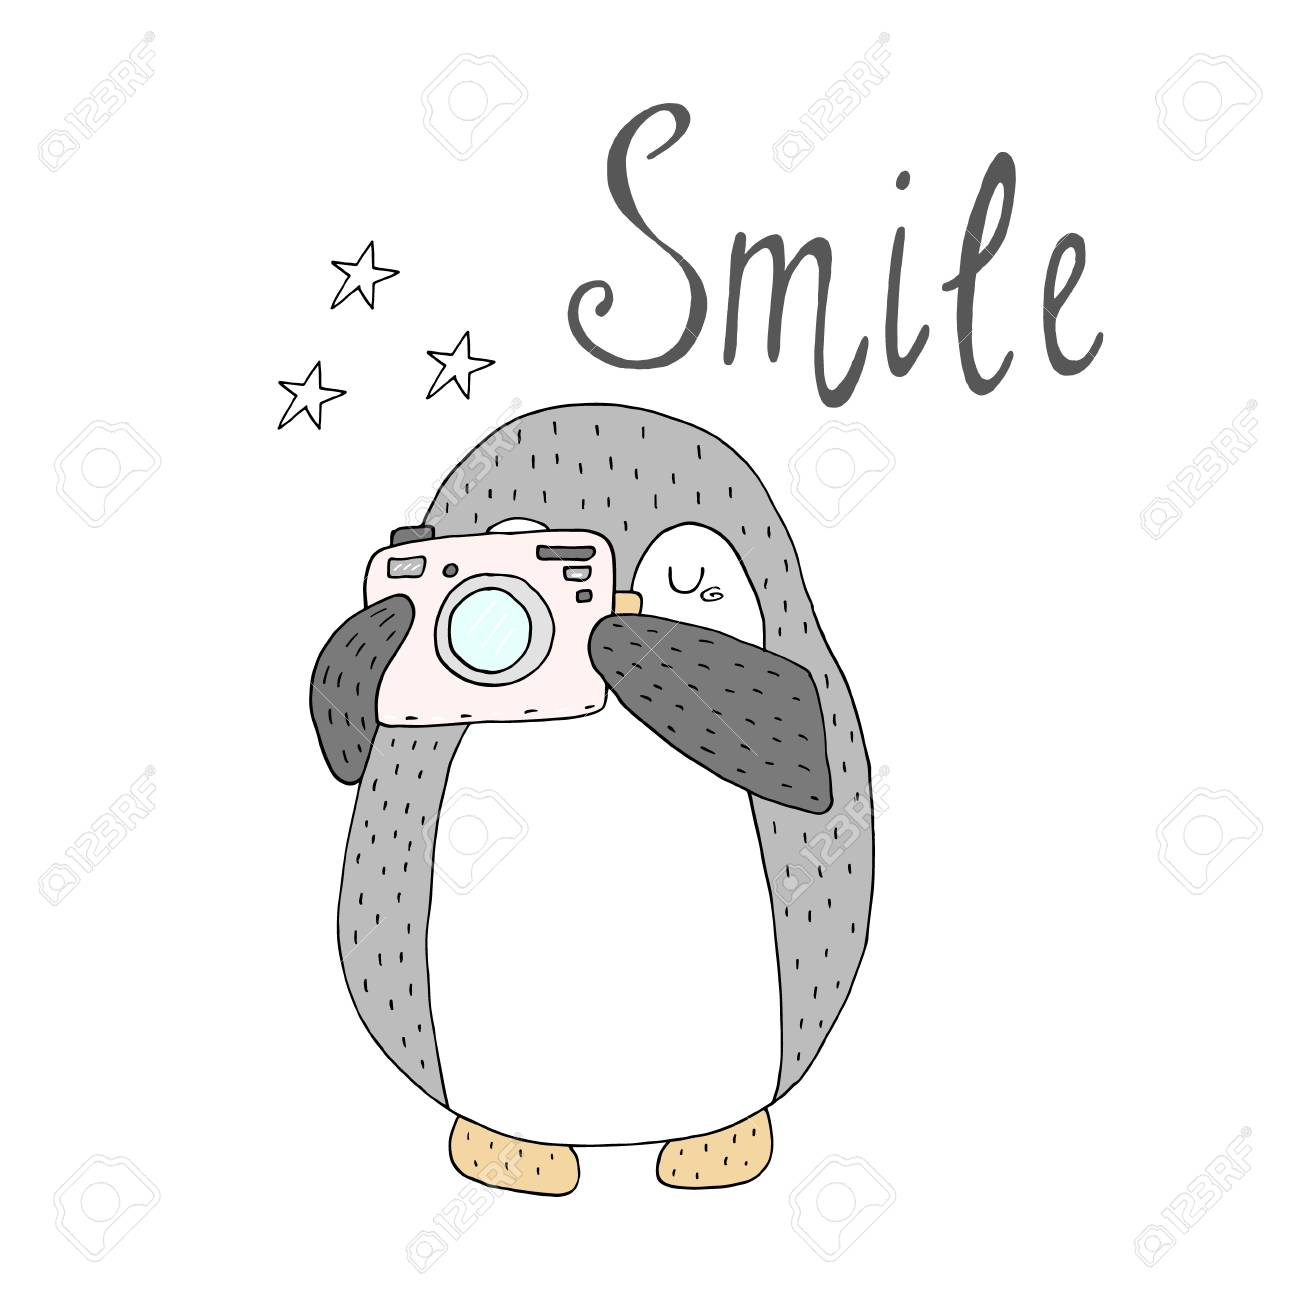 graphic regarding Penguins Printable referred to as Smile card with penguins. Printable templates layout.